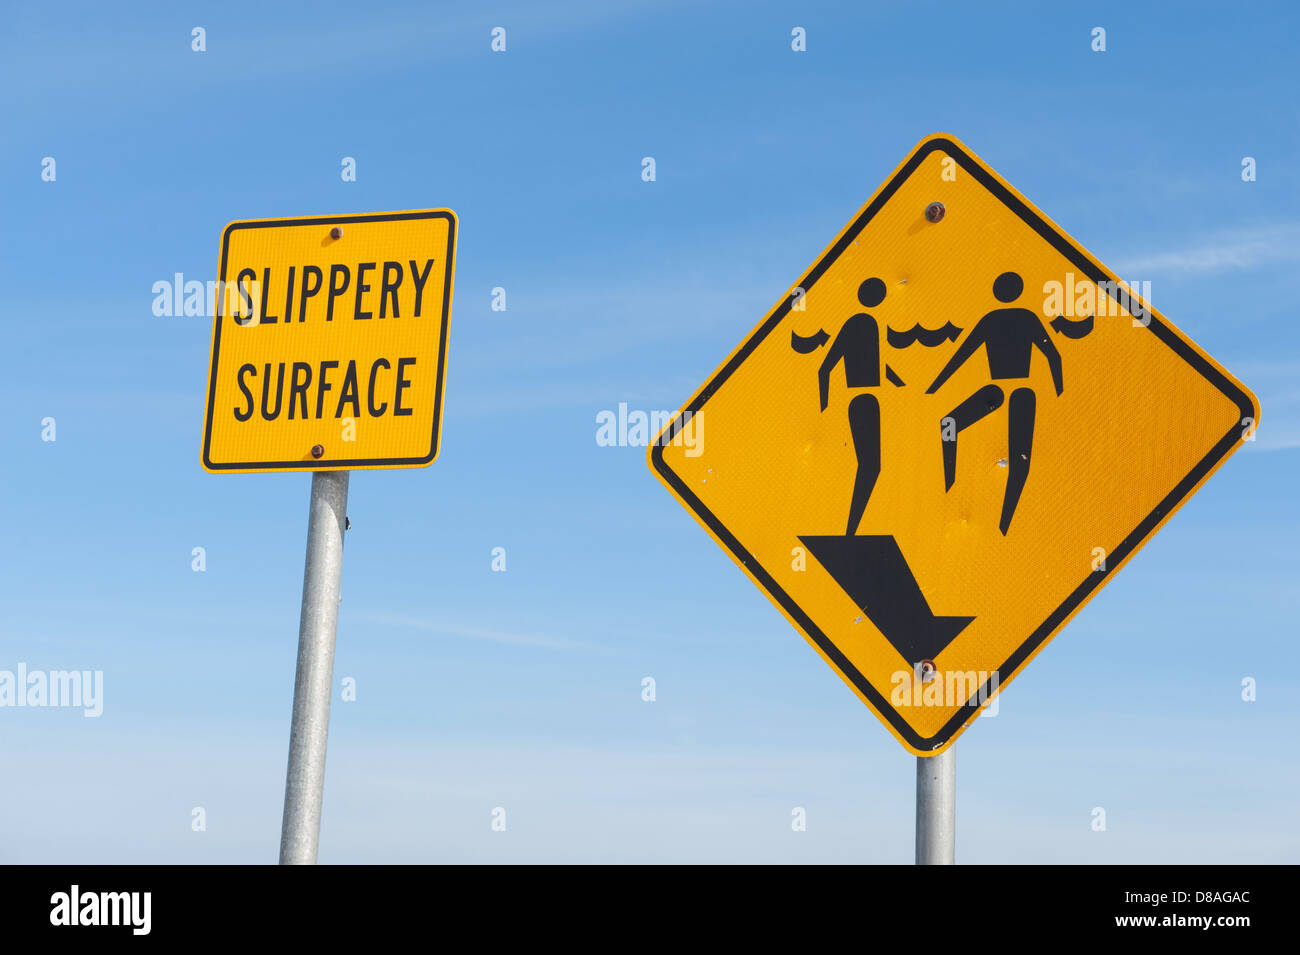 Signs warning of a slippery surface and sudden drop off - Stock Image